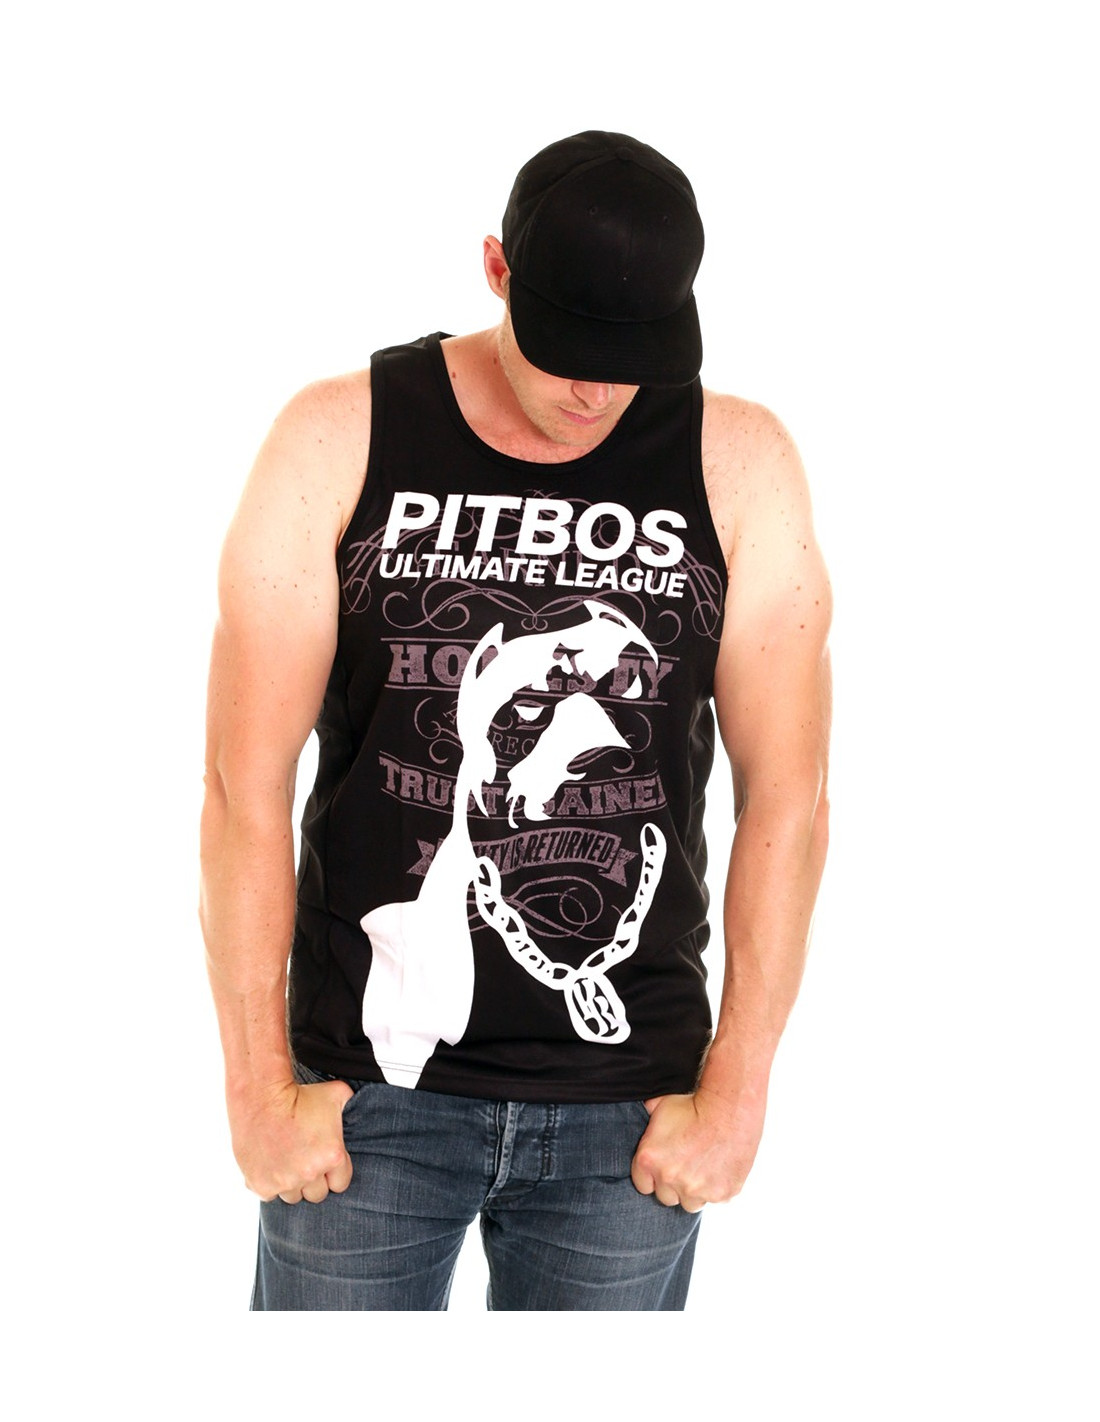 Pitbos Vol.2 Ultimate League Tanktop BlackNWhite